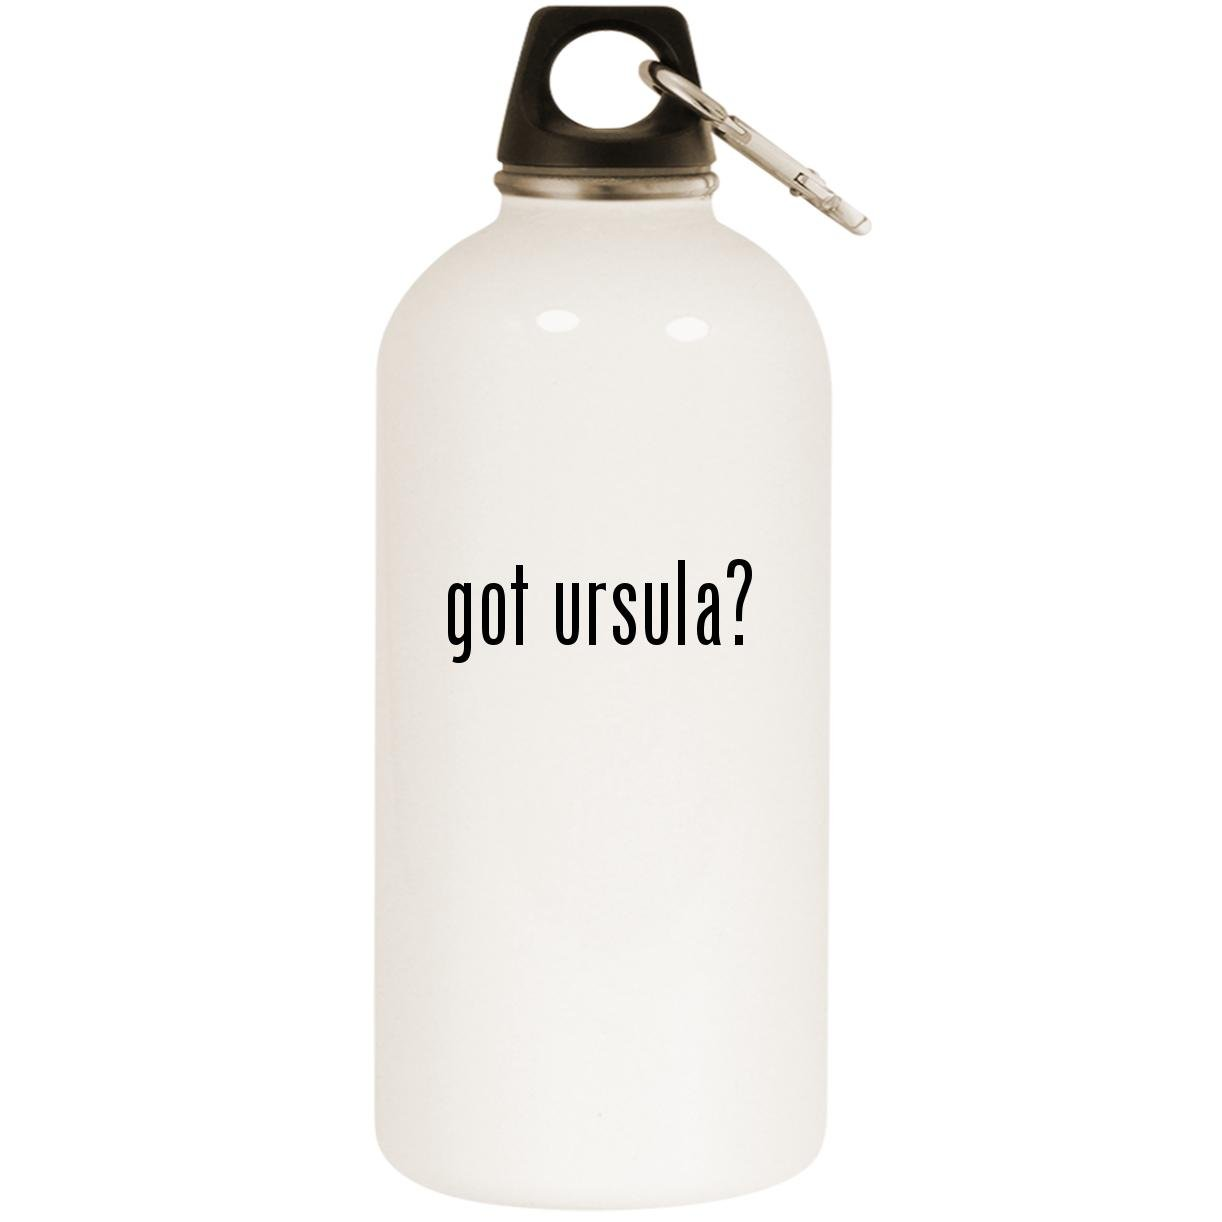 got ursula? - White 20oz Stainless Steel Water Bottle with Carabiner